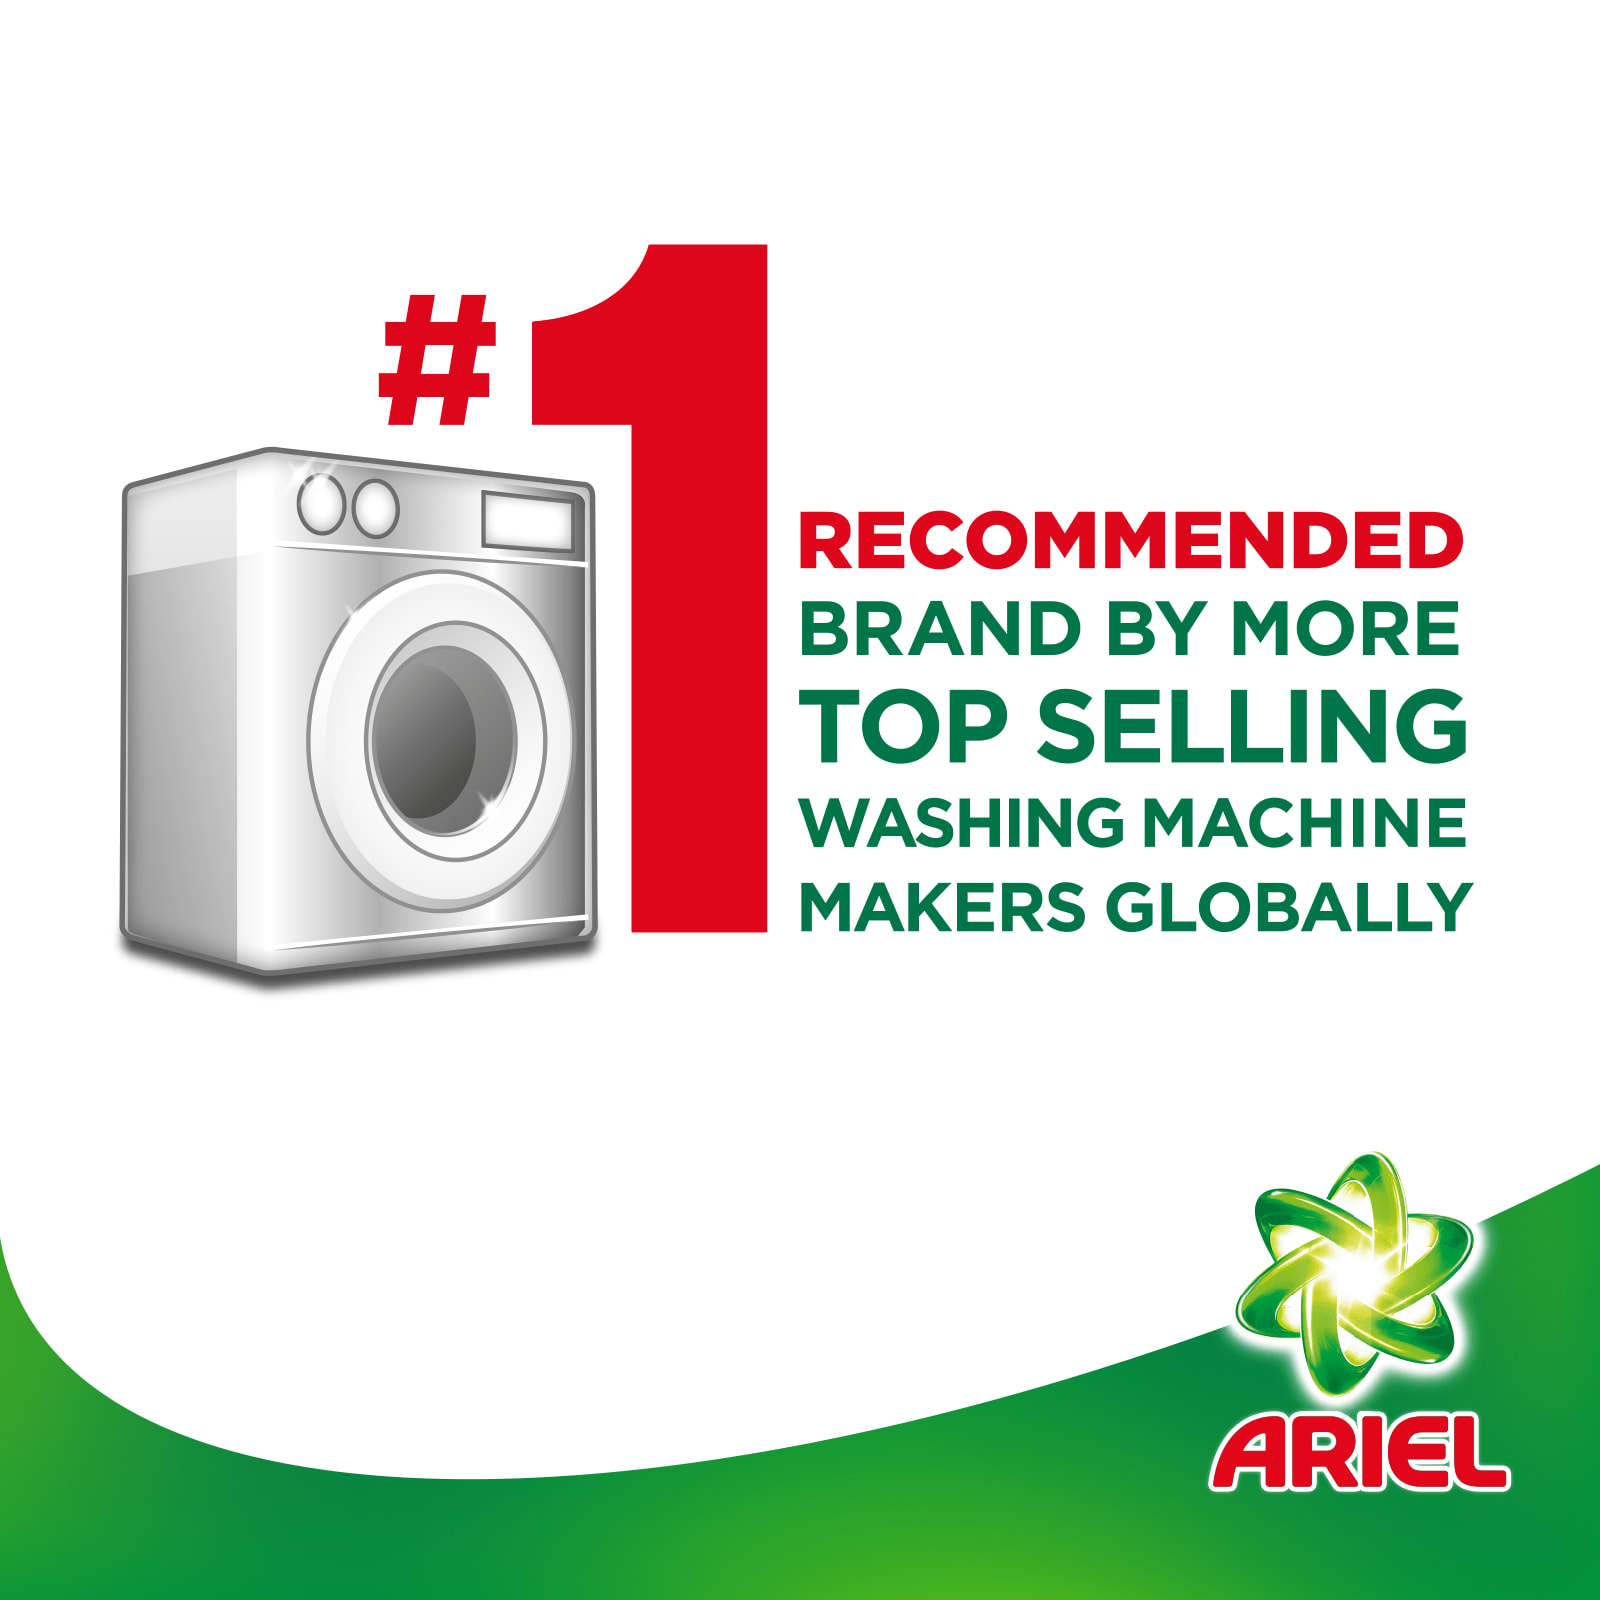 Number One recommended brand by more top selling washing machine makers globally